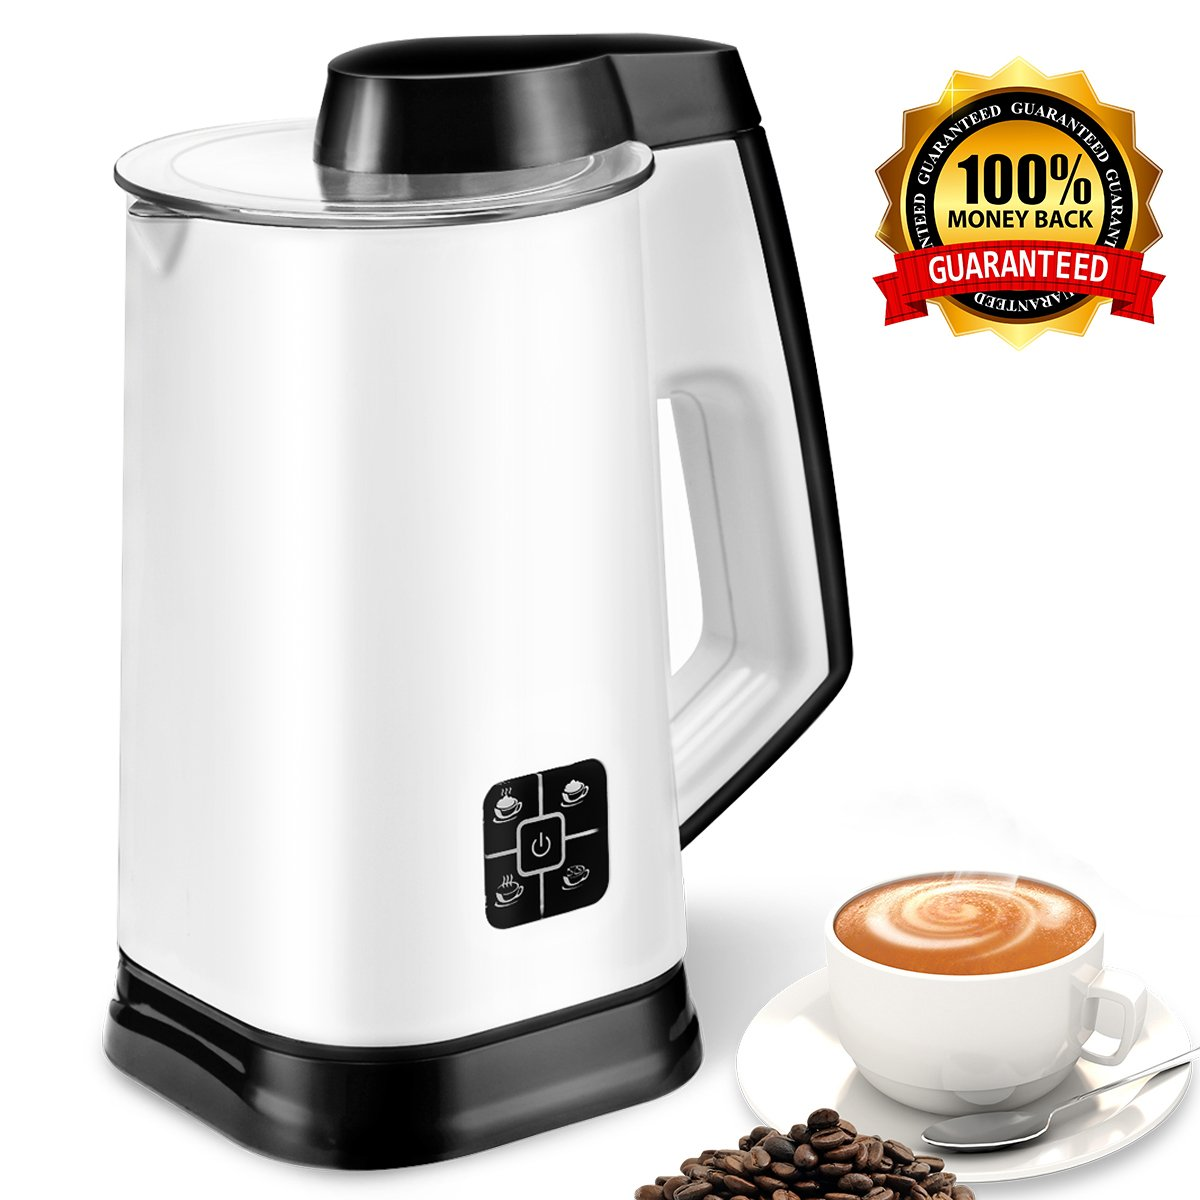 Amazon.com: Electric Milk Frother Machine Milk Foam Frother & Heater ...